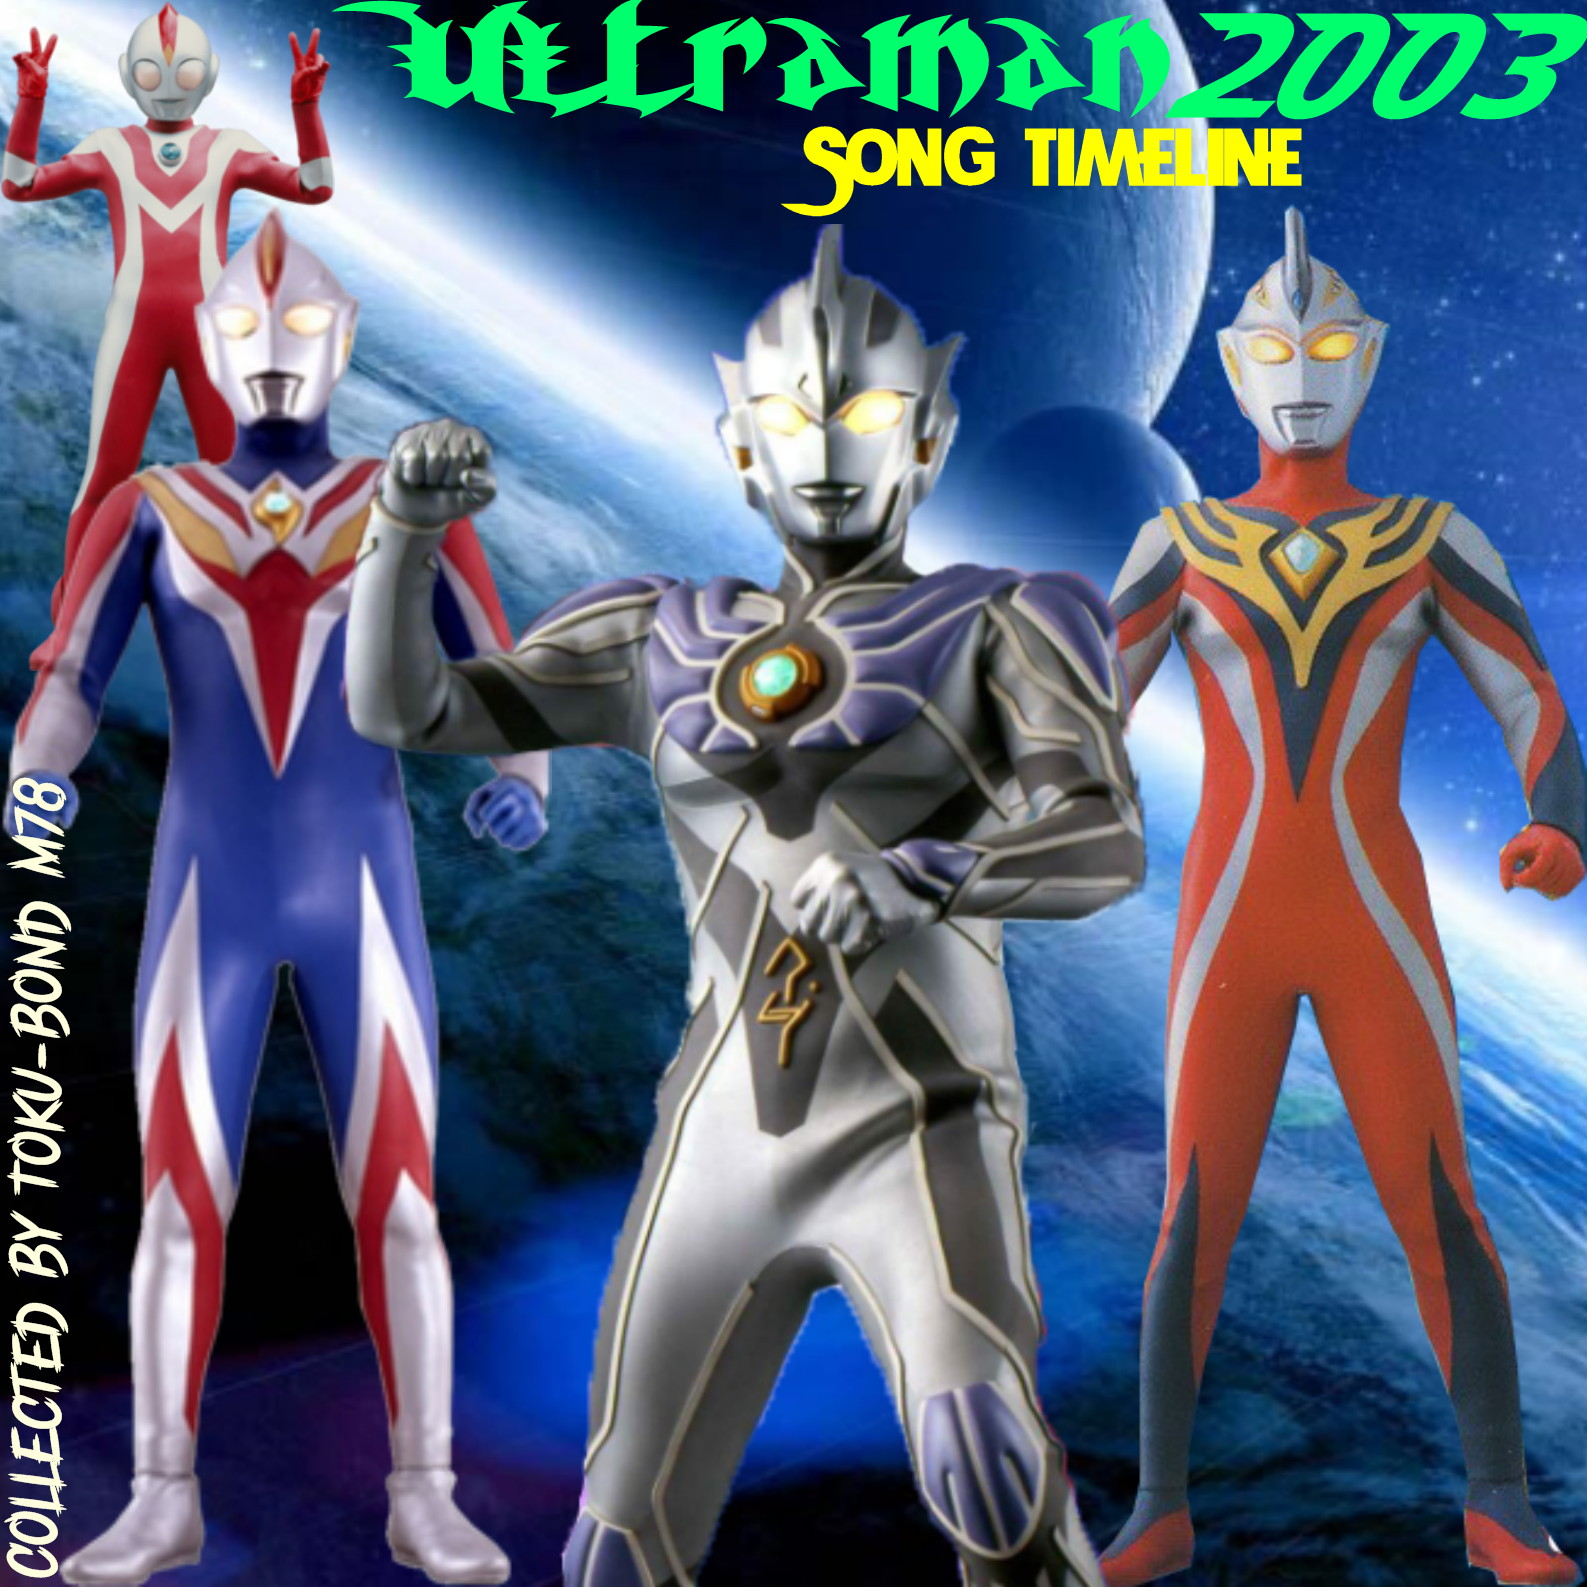 Im A Rider Song 320kbps Download: Download All Ultraman Song & Music Complete